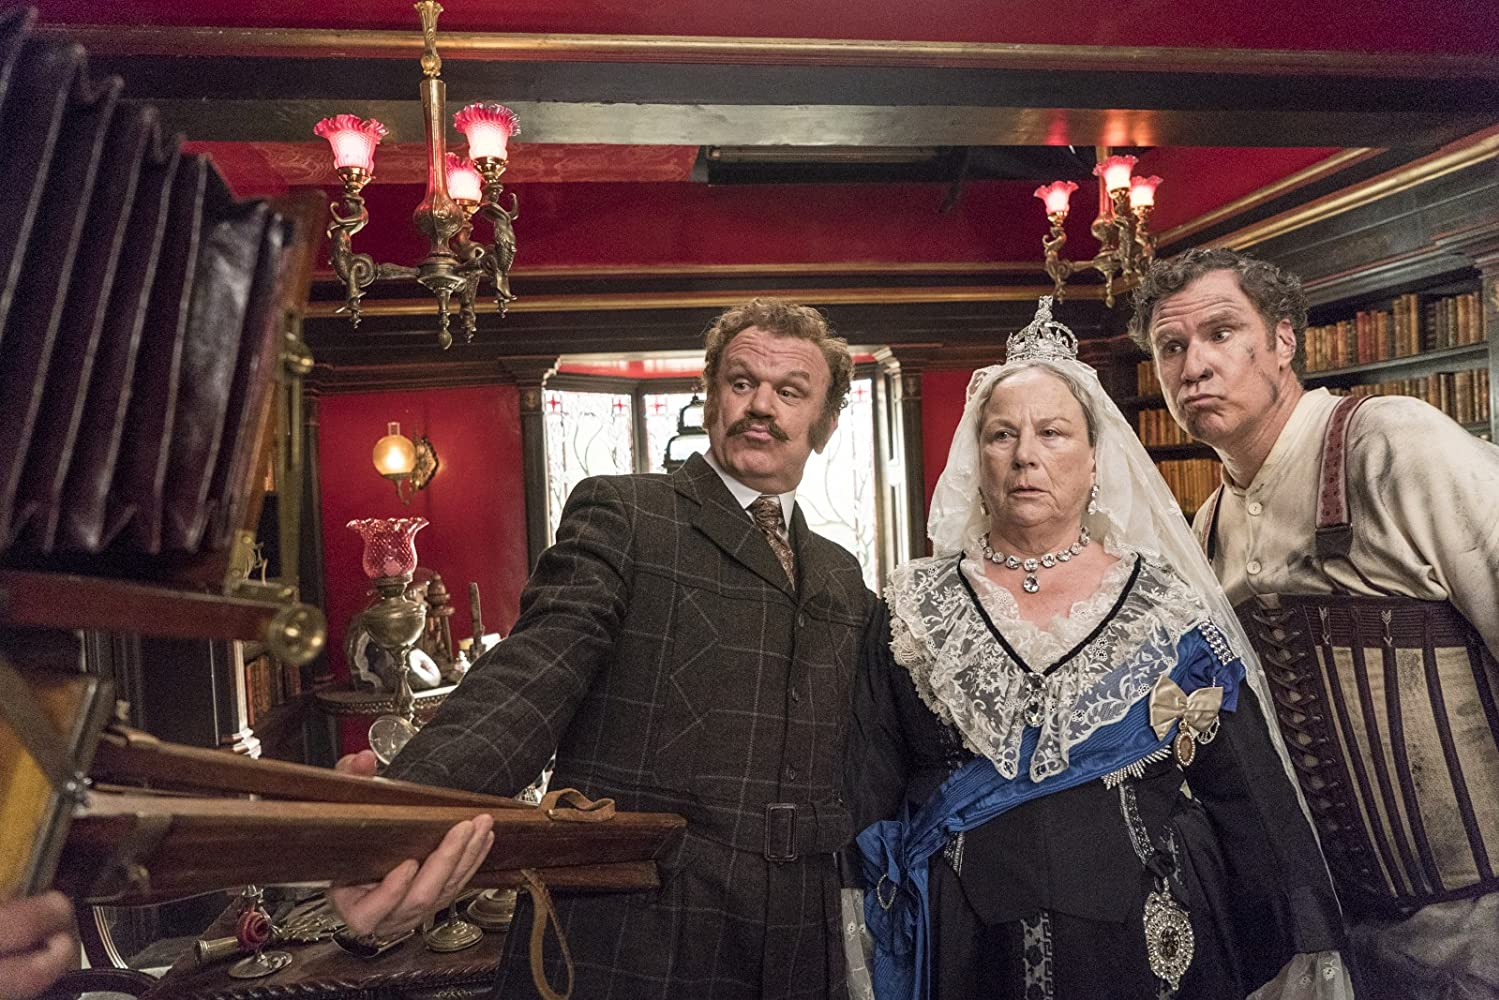 John C. Reilly, Will Ferrell, and Pam Ferris in Holmes & Watson (2018)